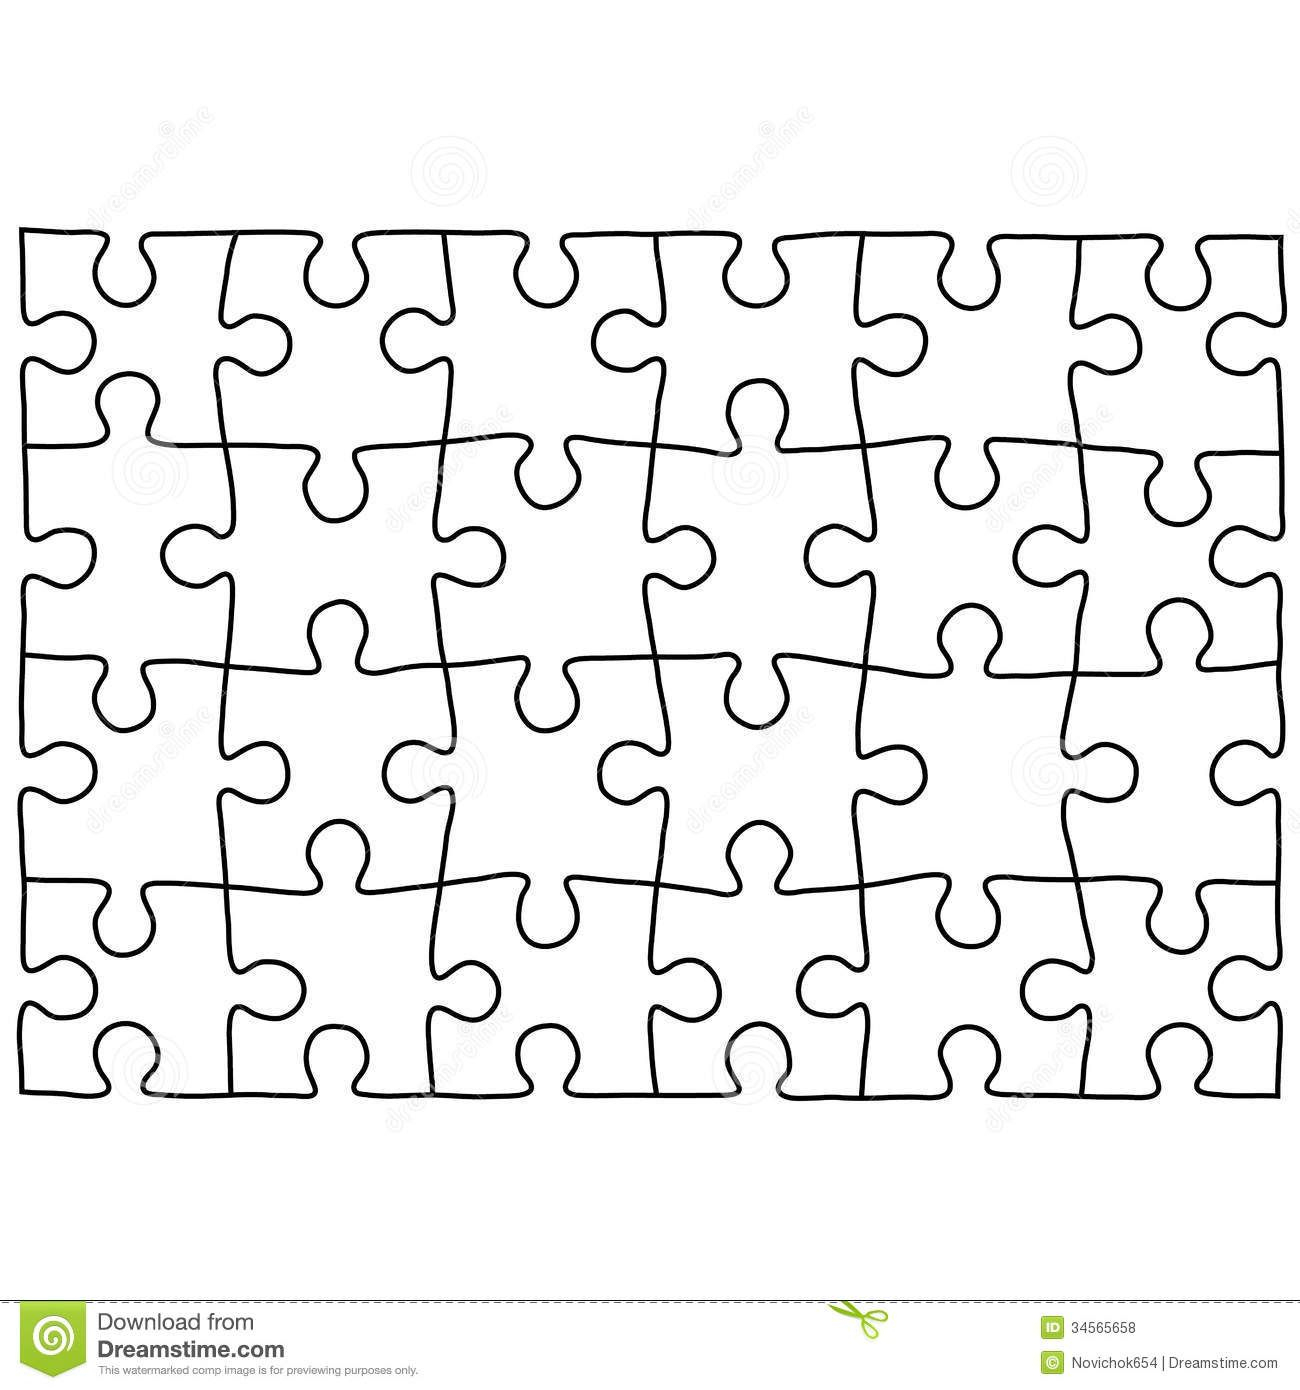 Jigsaw Puzzle Design Template   Free Puzzle Templates 1300.1390 - Printable Jigsaw Puzzle Maker